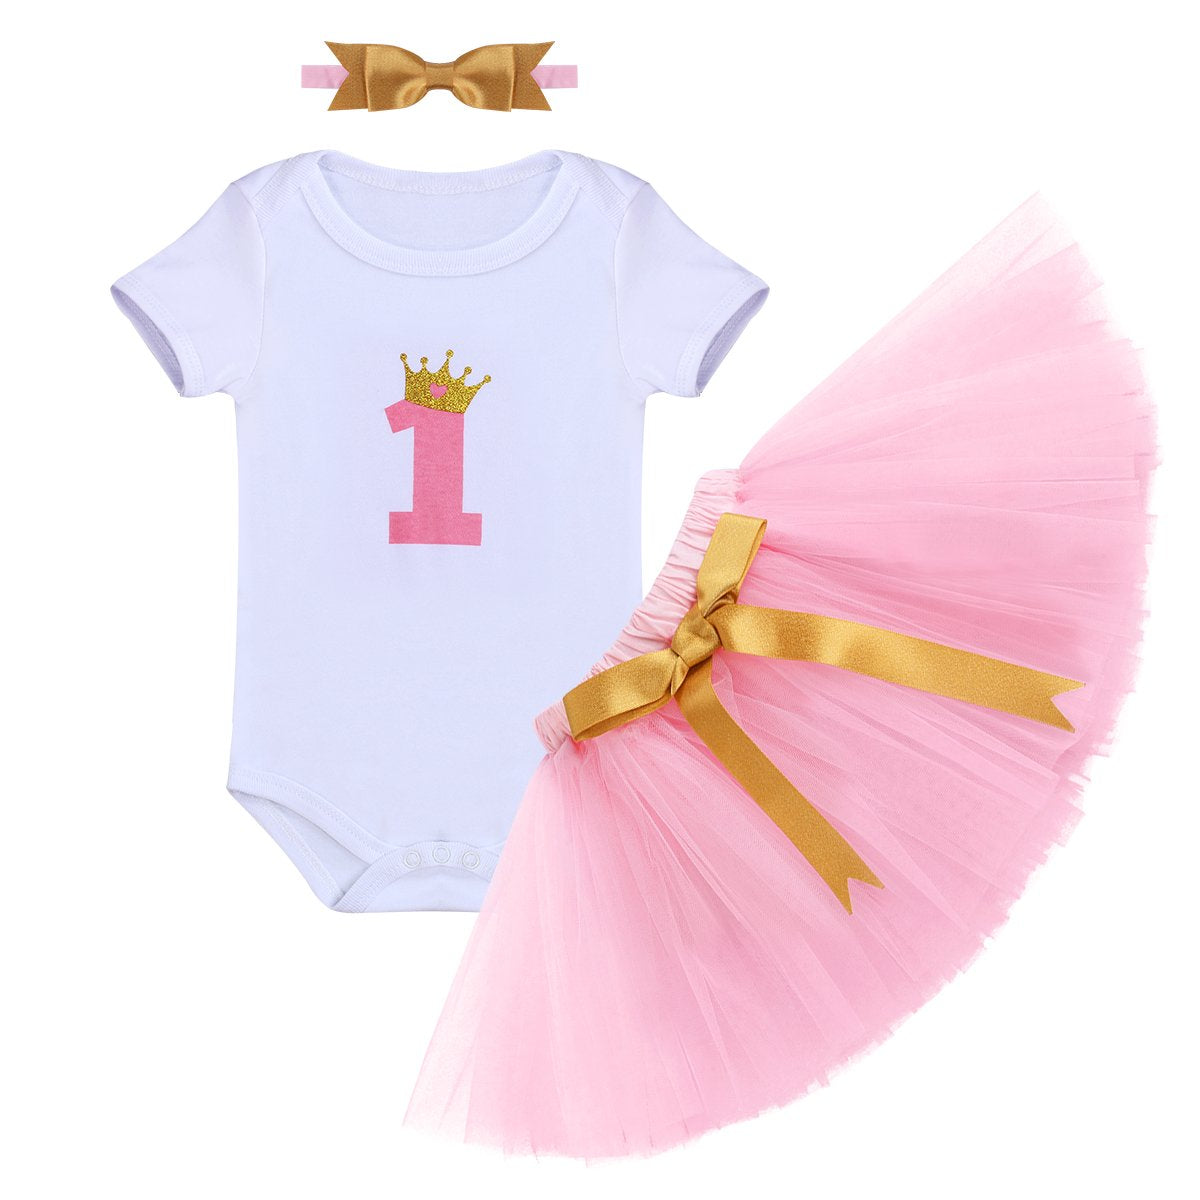 pink_1st_birthday_outfit